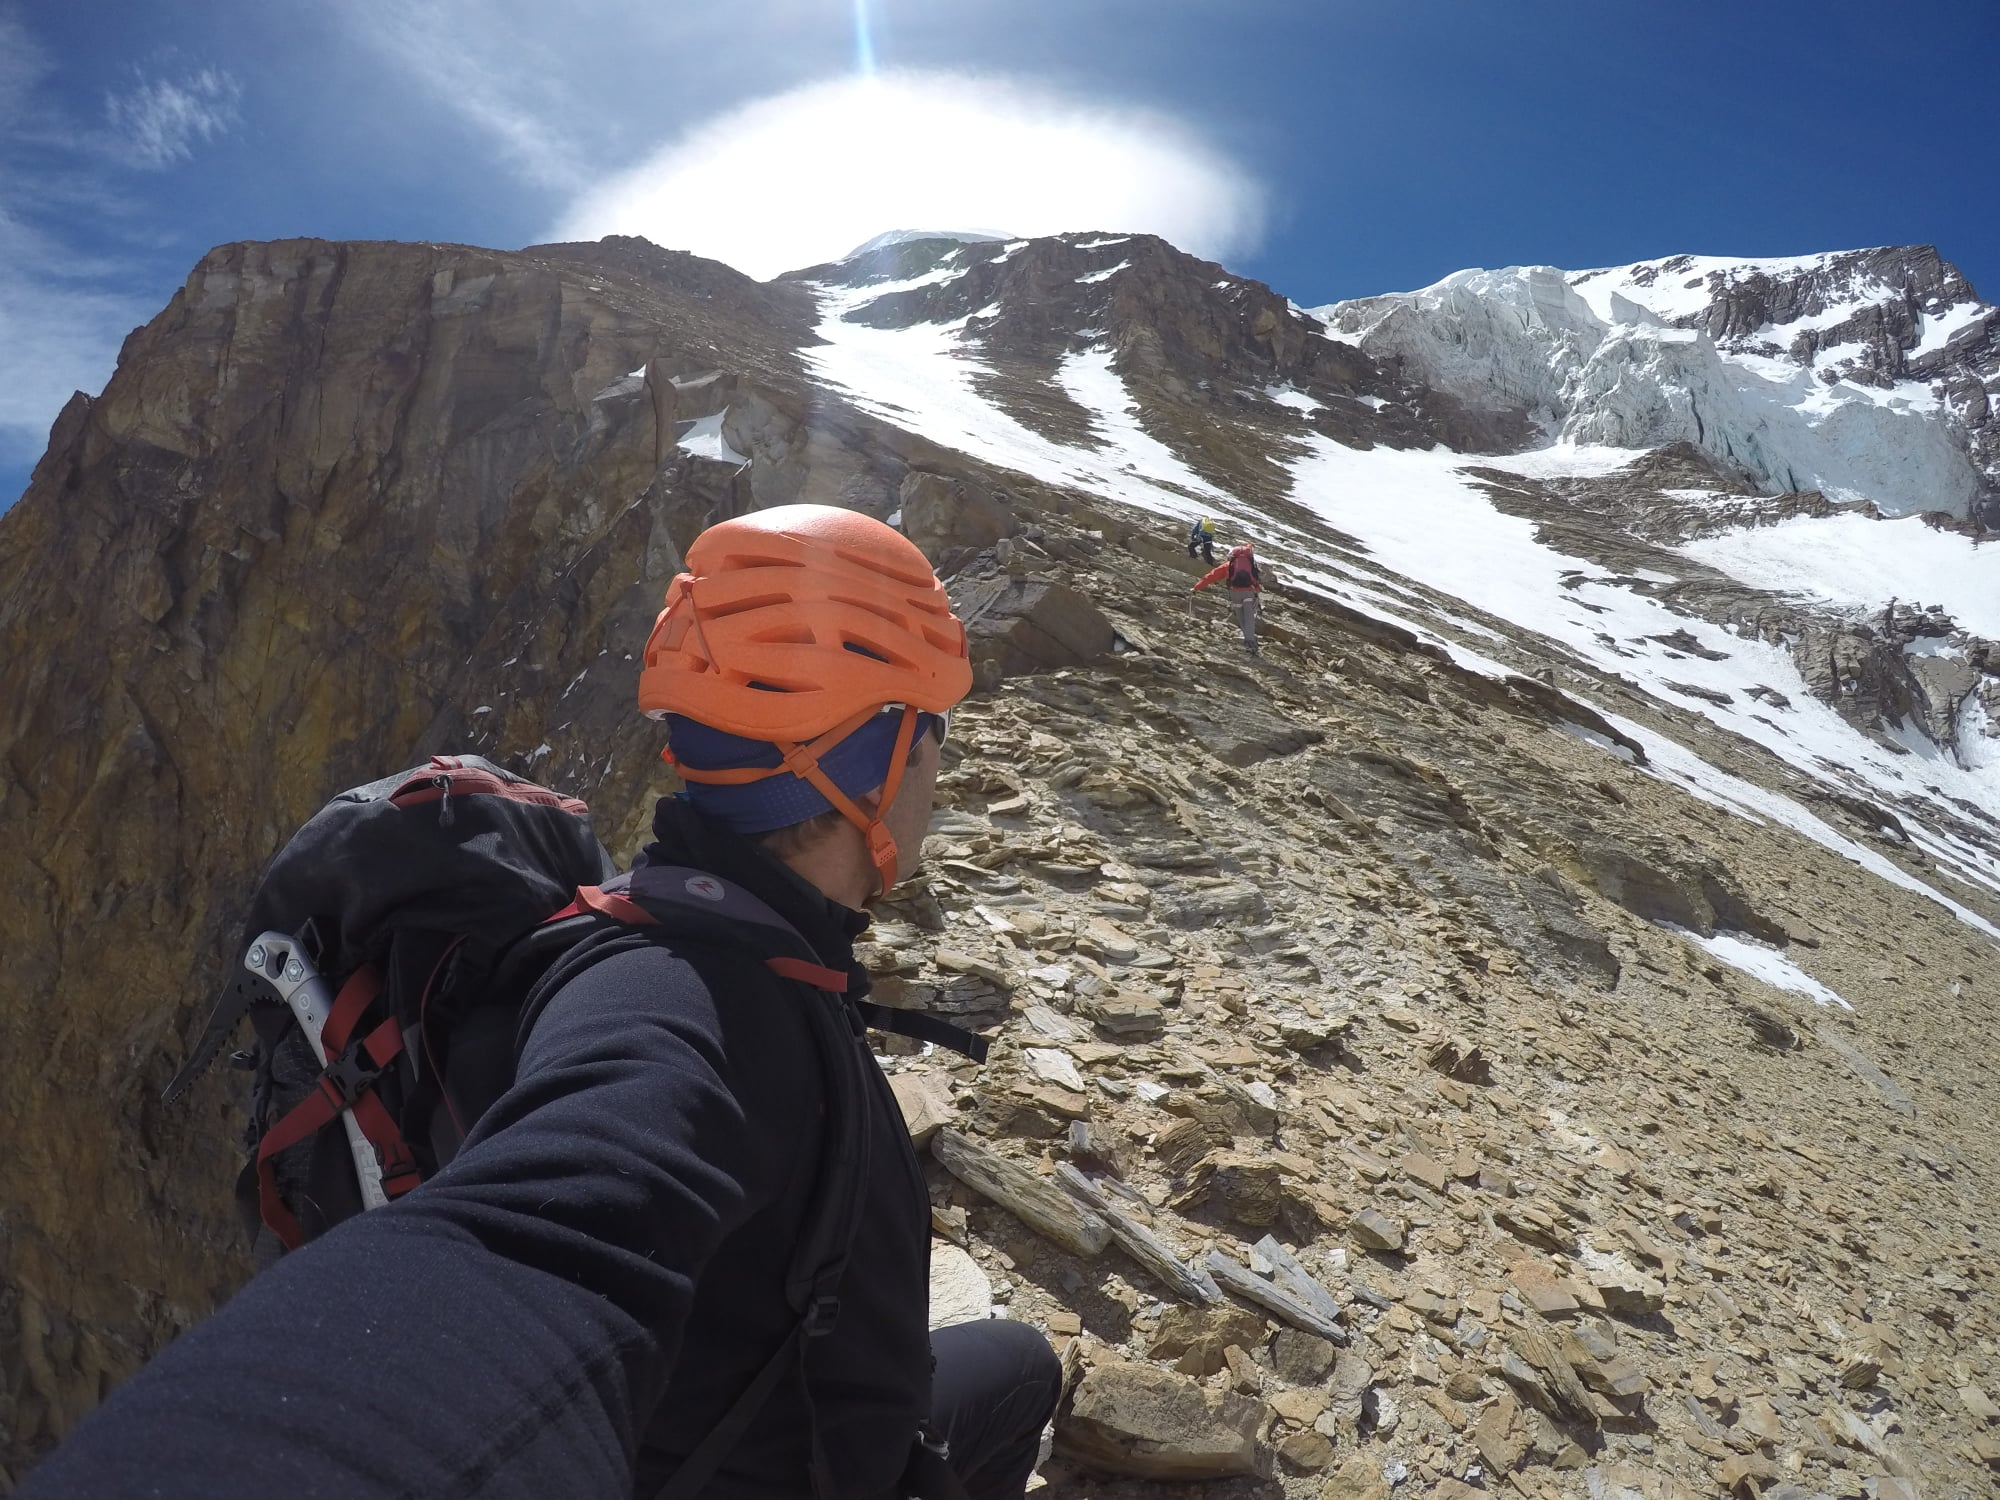 Selfie of a climber and his two partners on Dhaulagiri